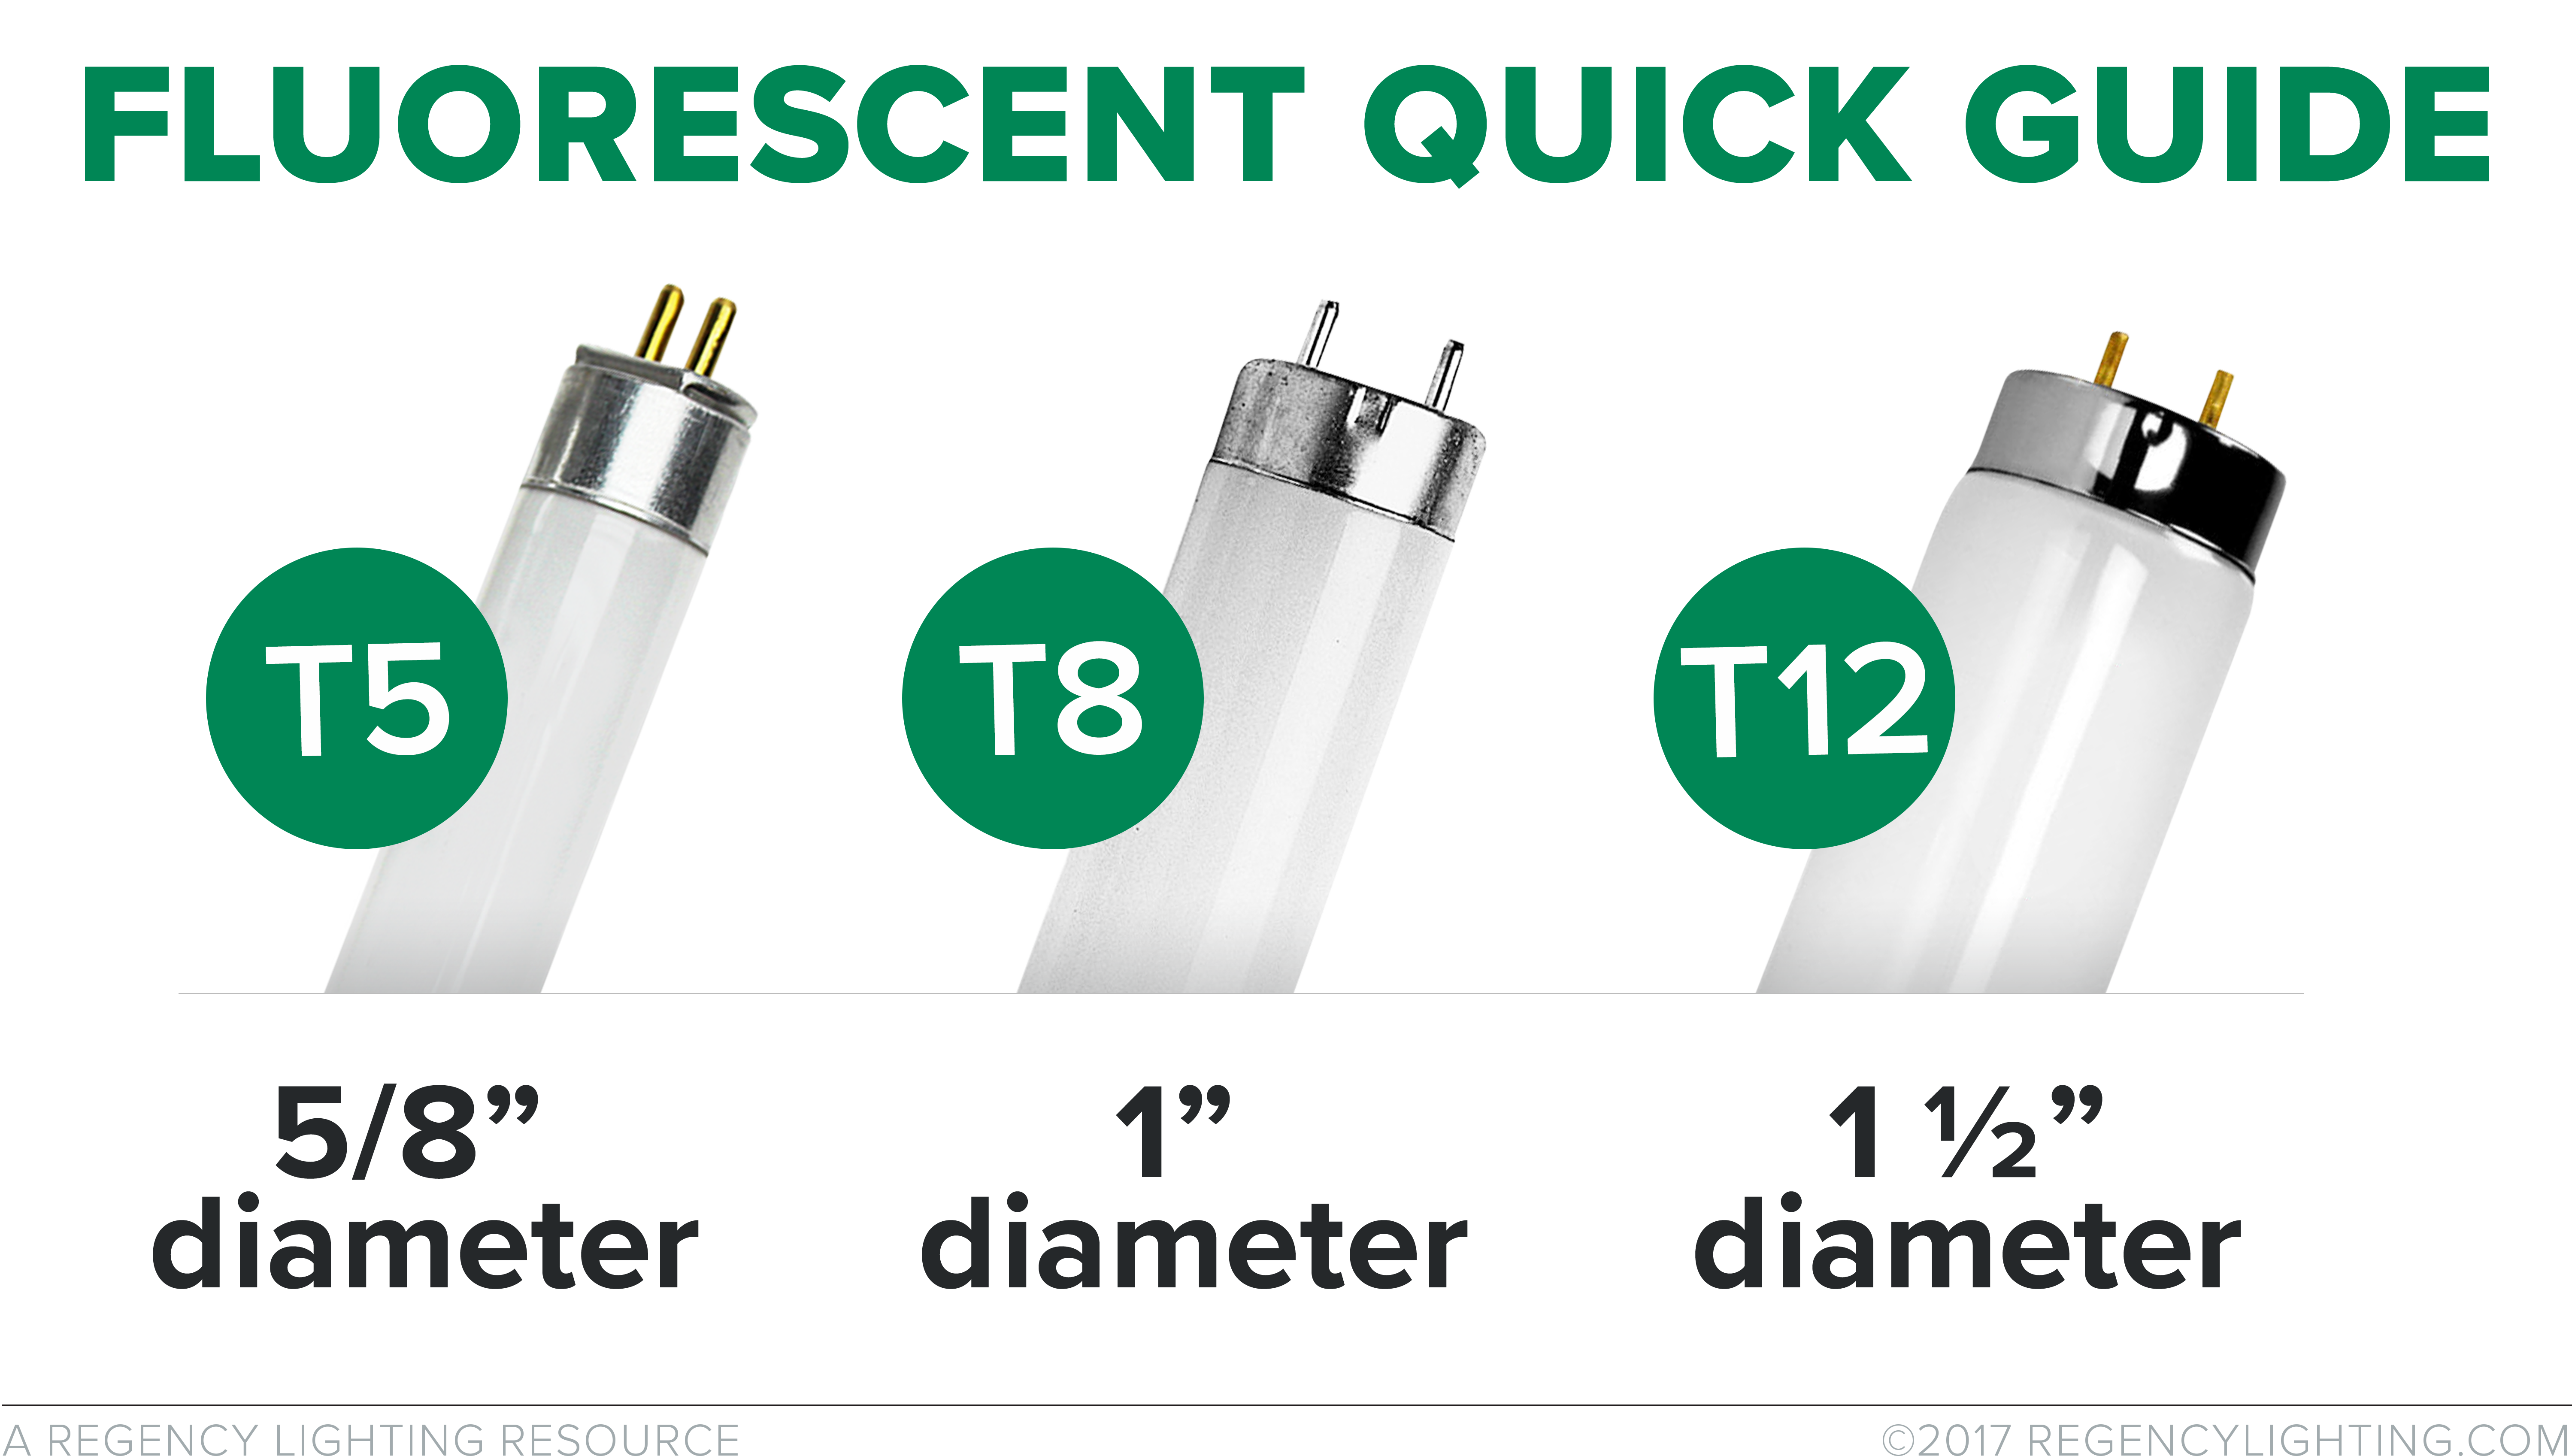 Fluorescent_Bulb_Quick_Guide_FINAL?t=1512511005527&width=550&name=Fluorescent_Bulb_Quick_Guide_FINAL a plug and play led replacement for t12s? yep pros and cons explored ge-240-rs-mv-n wiring diagram at n-0.co